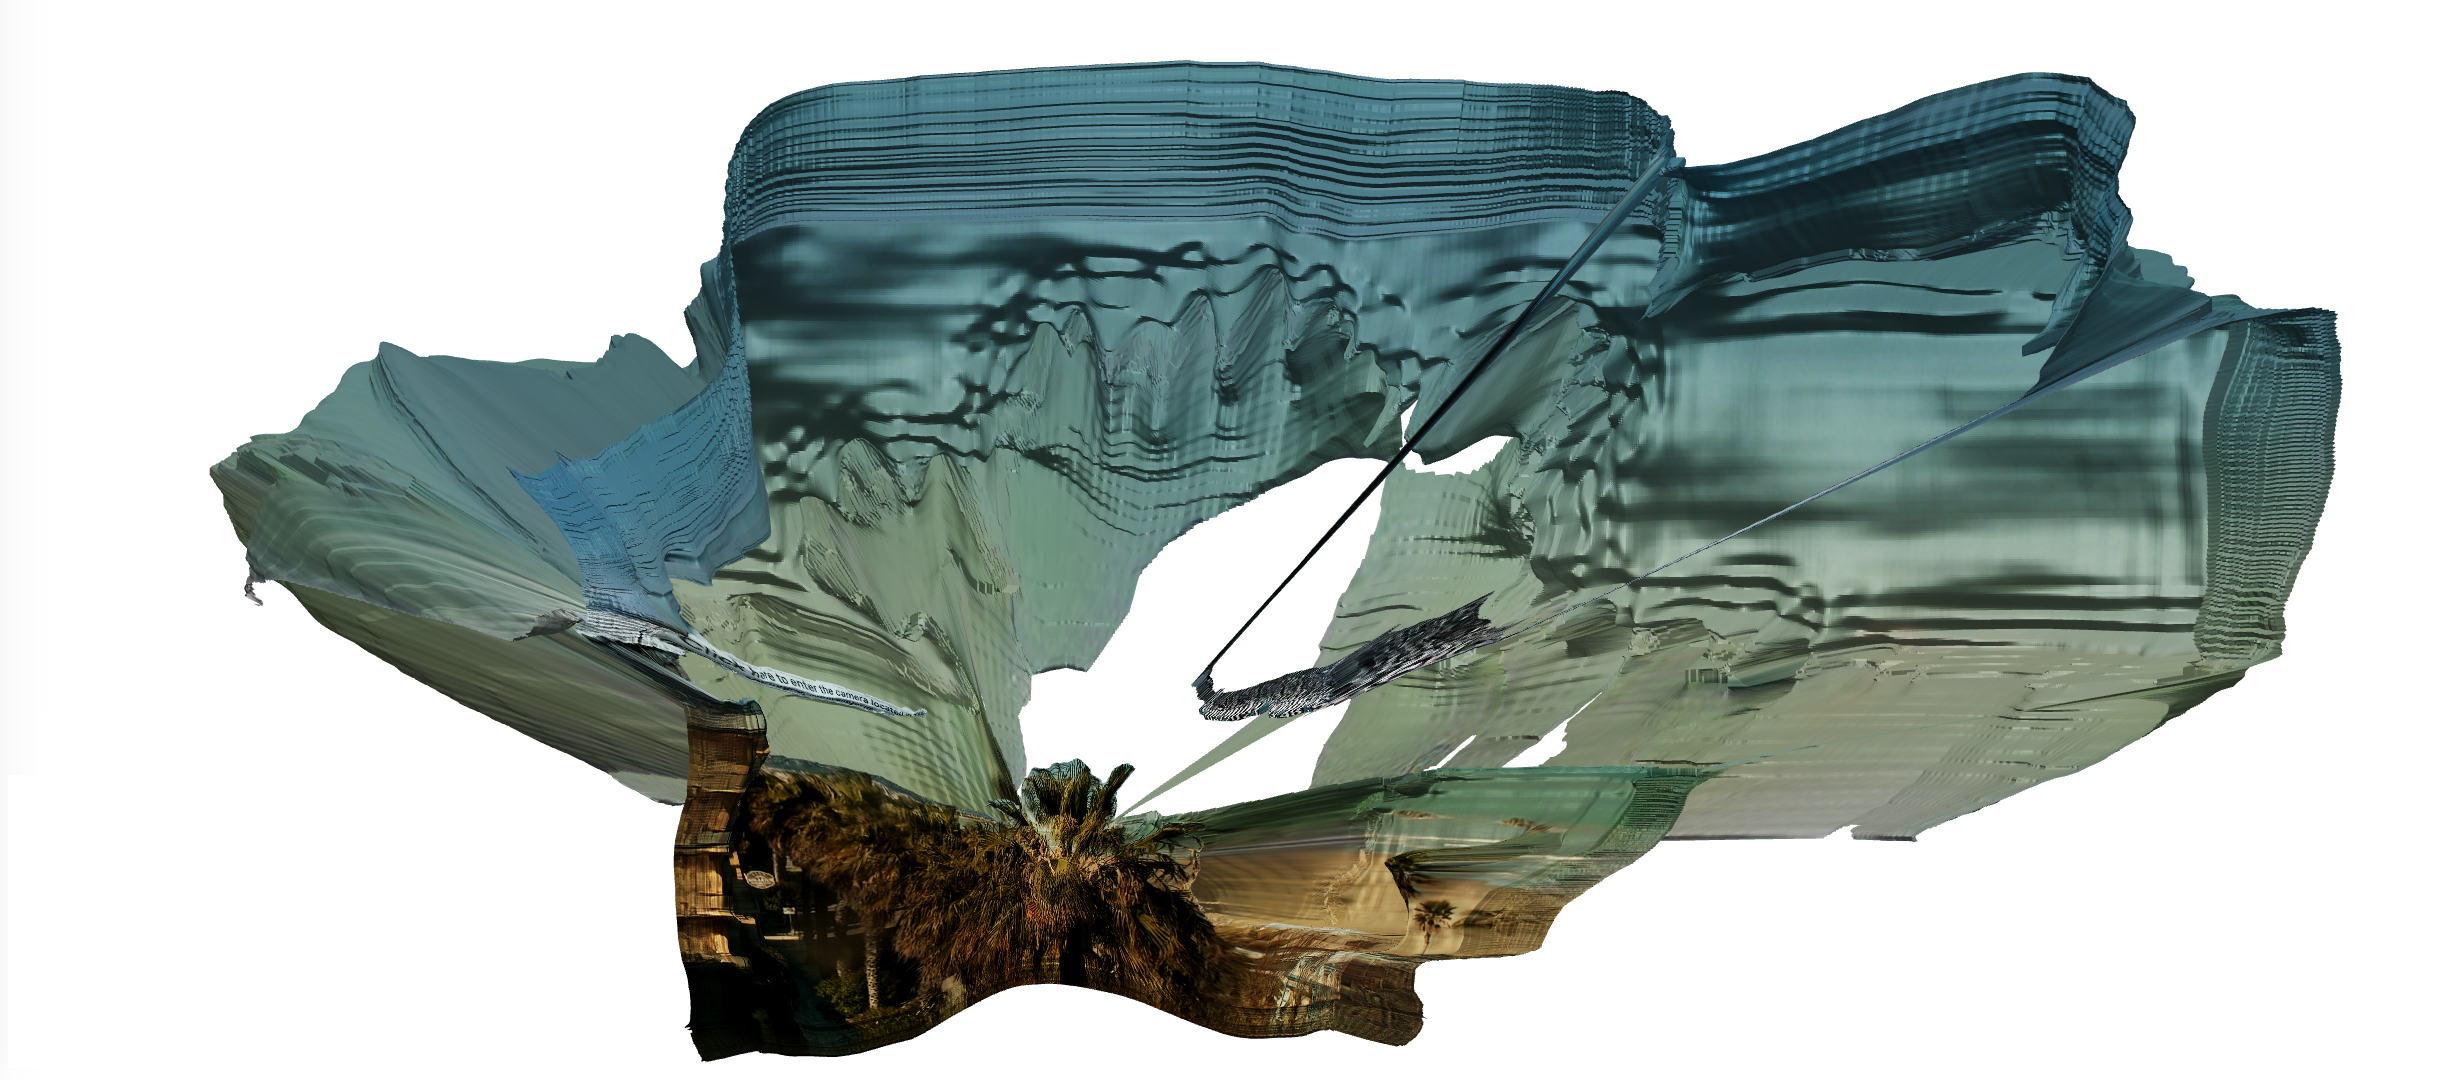 Floating Utopia Act 2, 2021. This utopia reconstructs the natural landscape, stitching together imaginary surfaces and myths of nature's damaged parts and ruptures